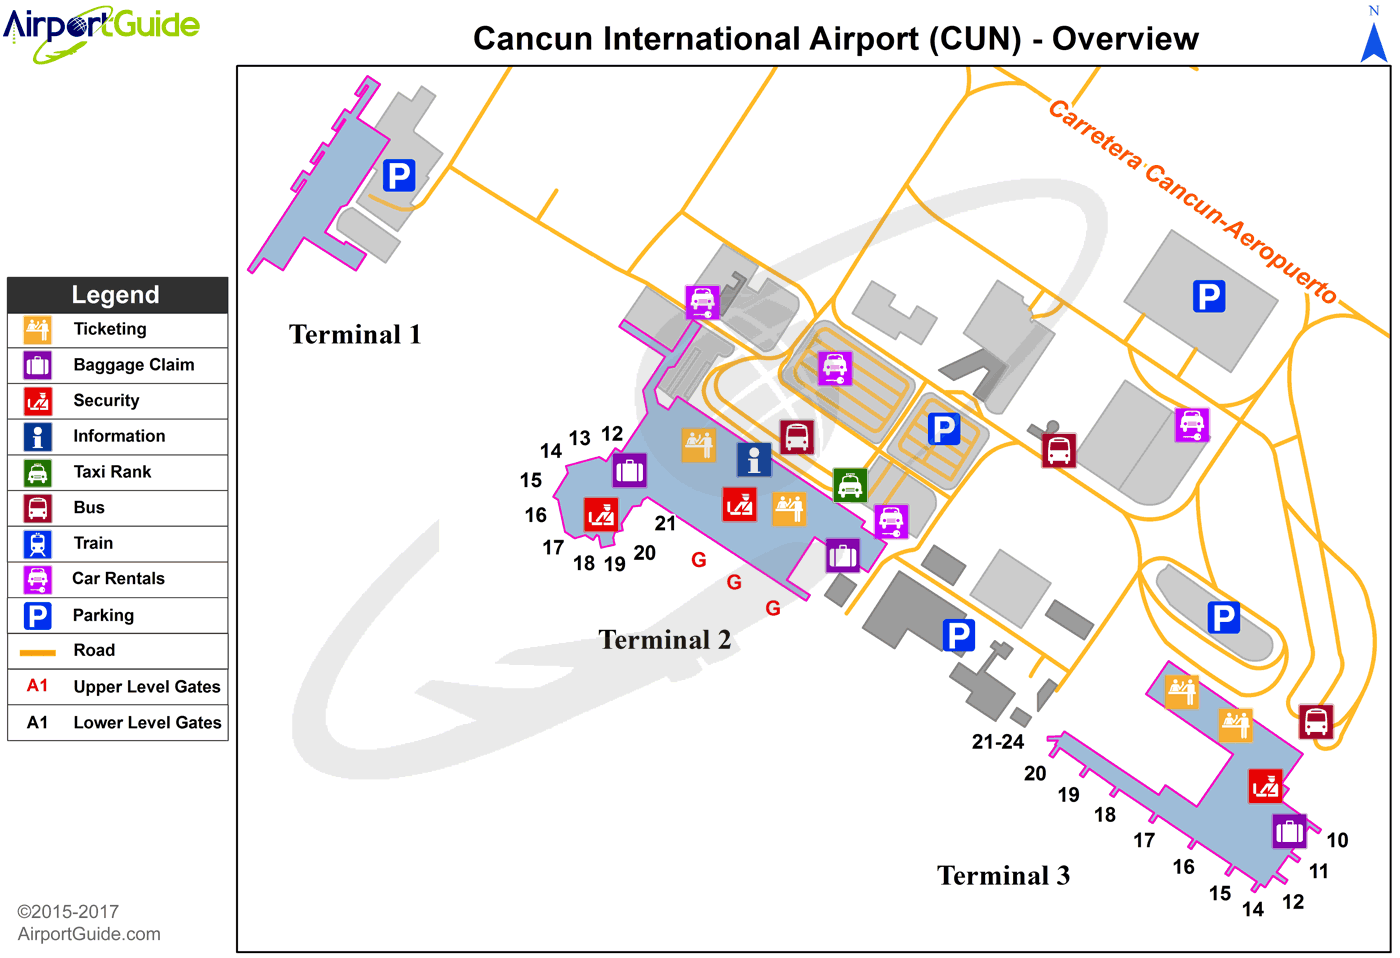 Cancún - Cancún International (CUN) Airport Terminal Map - Overview